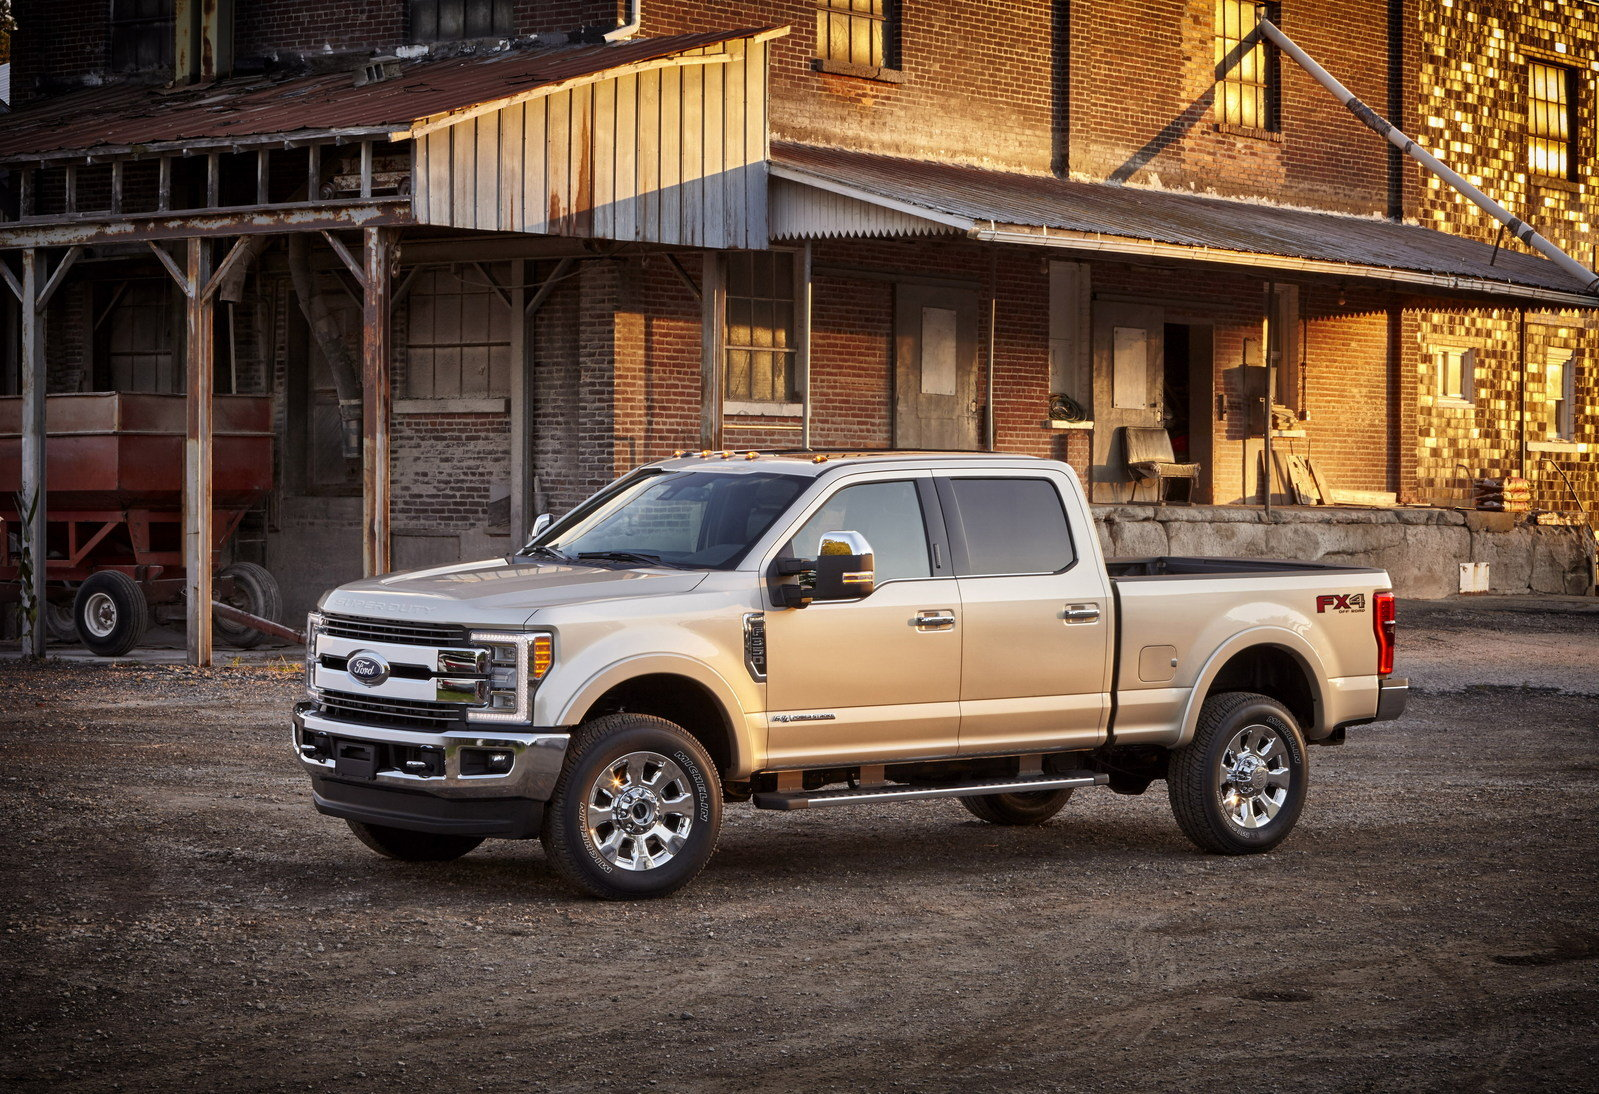 2017 ford super duty picture 648426 truck review top speed. Black Bedroom Furniture Sets. Home Design Ideas